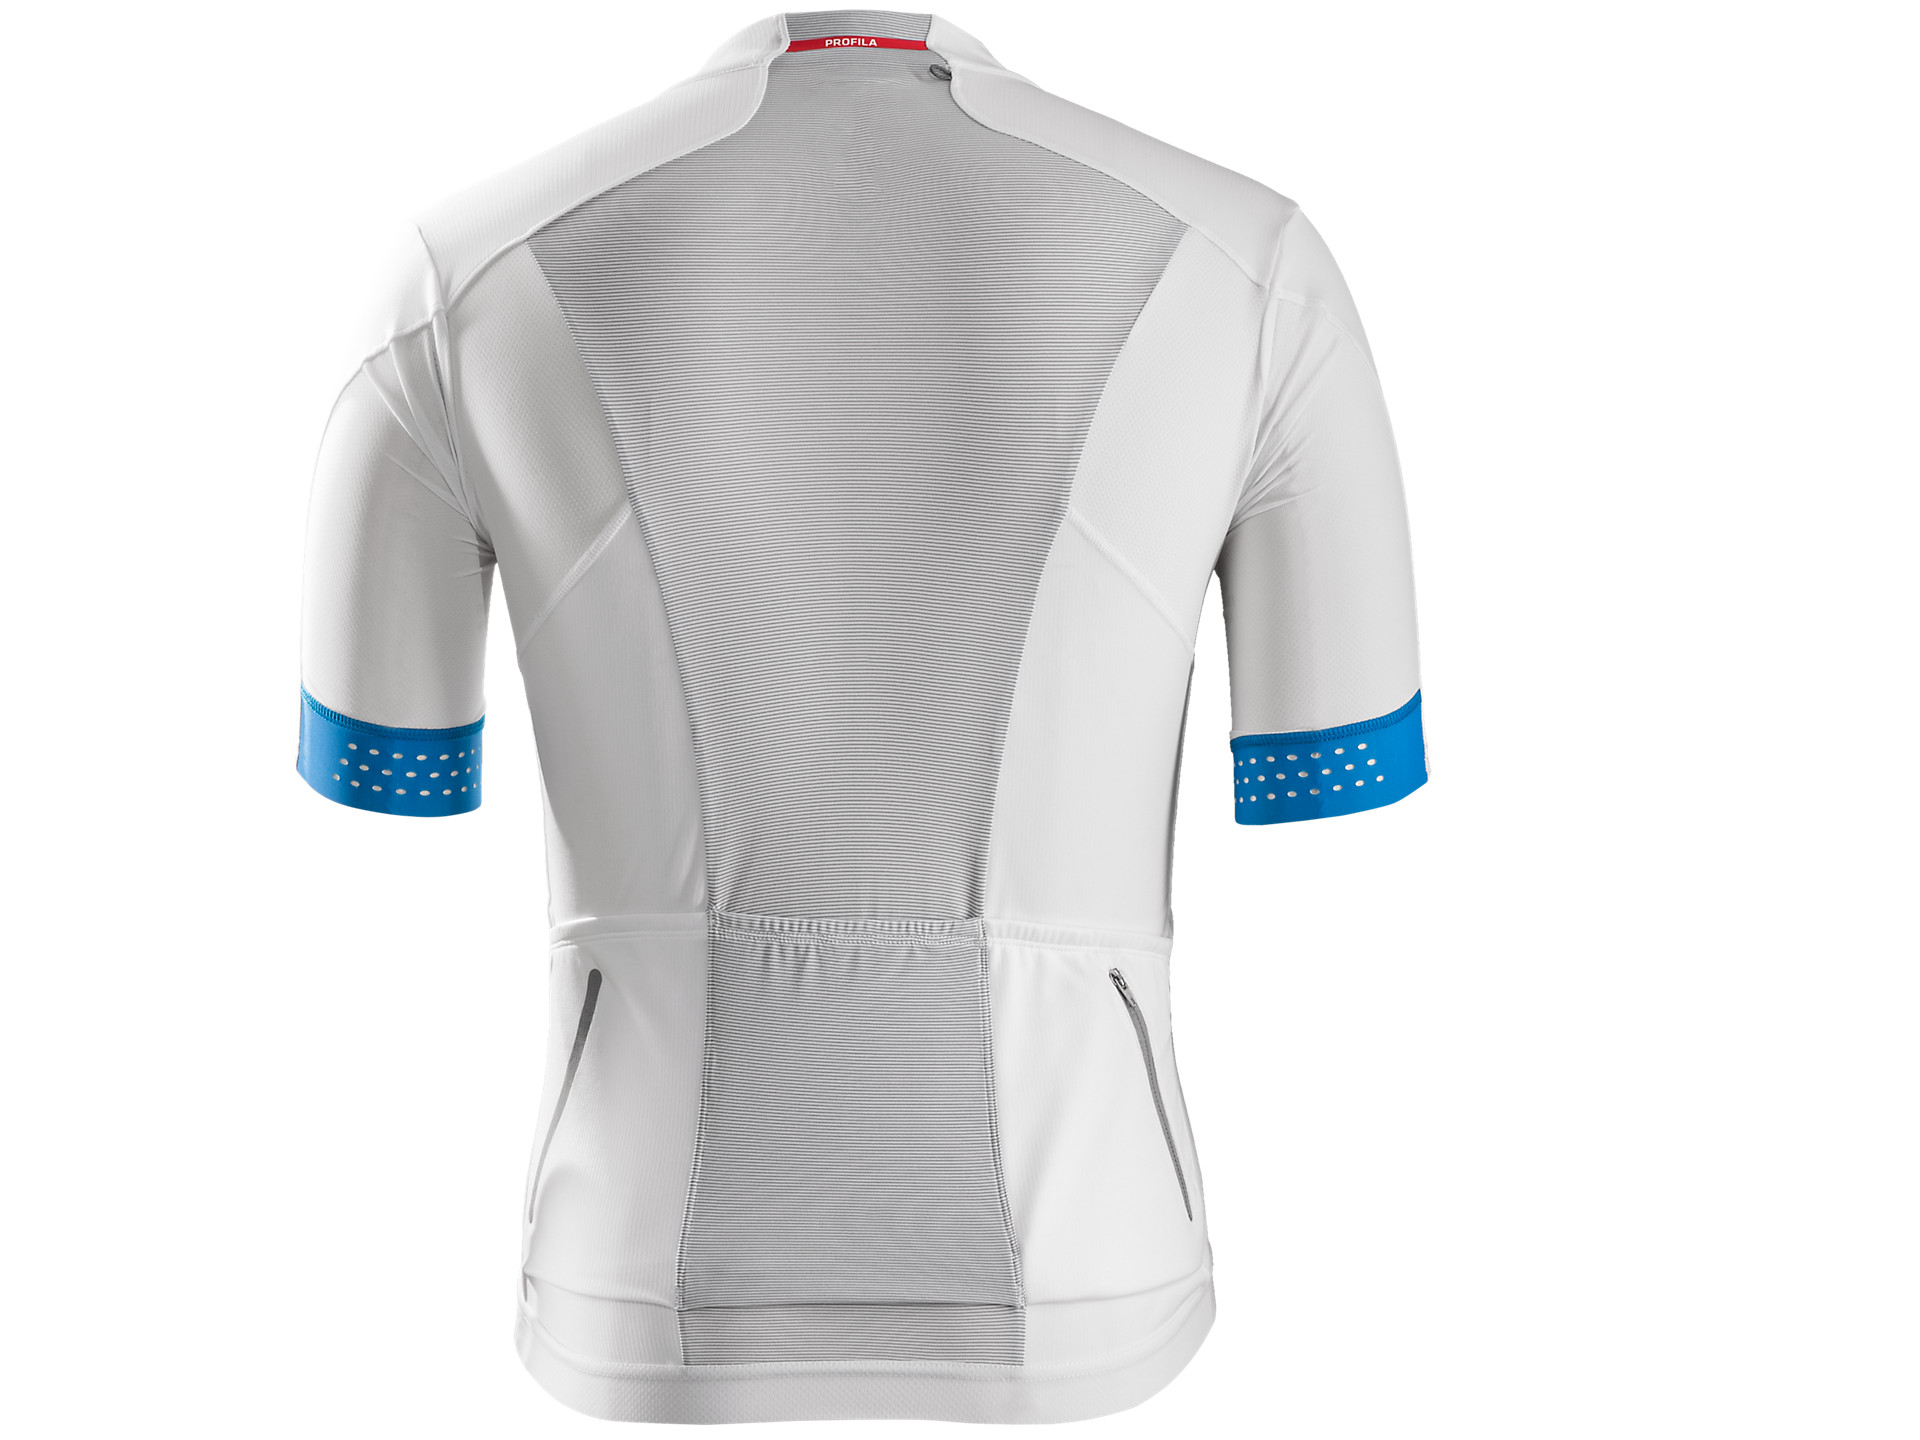 Bontrager Velocis Cycling Jersey. Overview  Features  Reviews  FAQs  Buy.  Prev Next 540d57d87